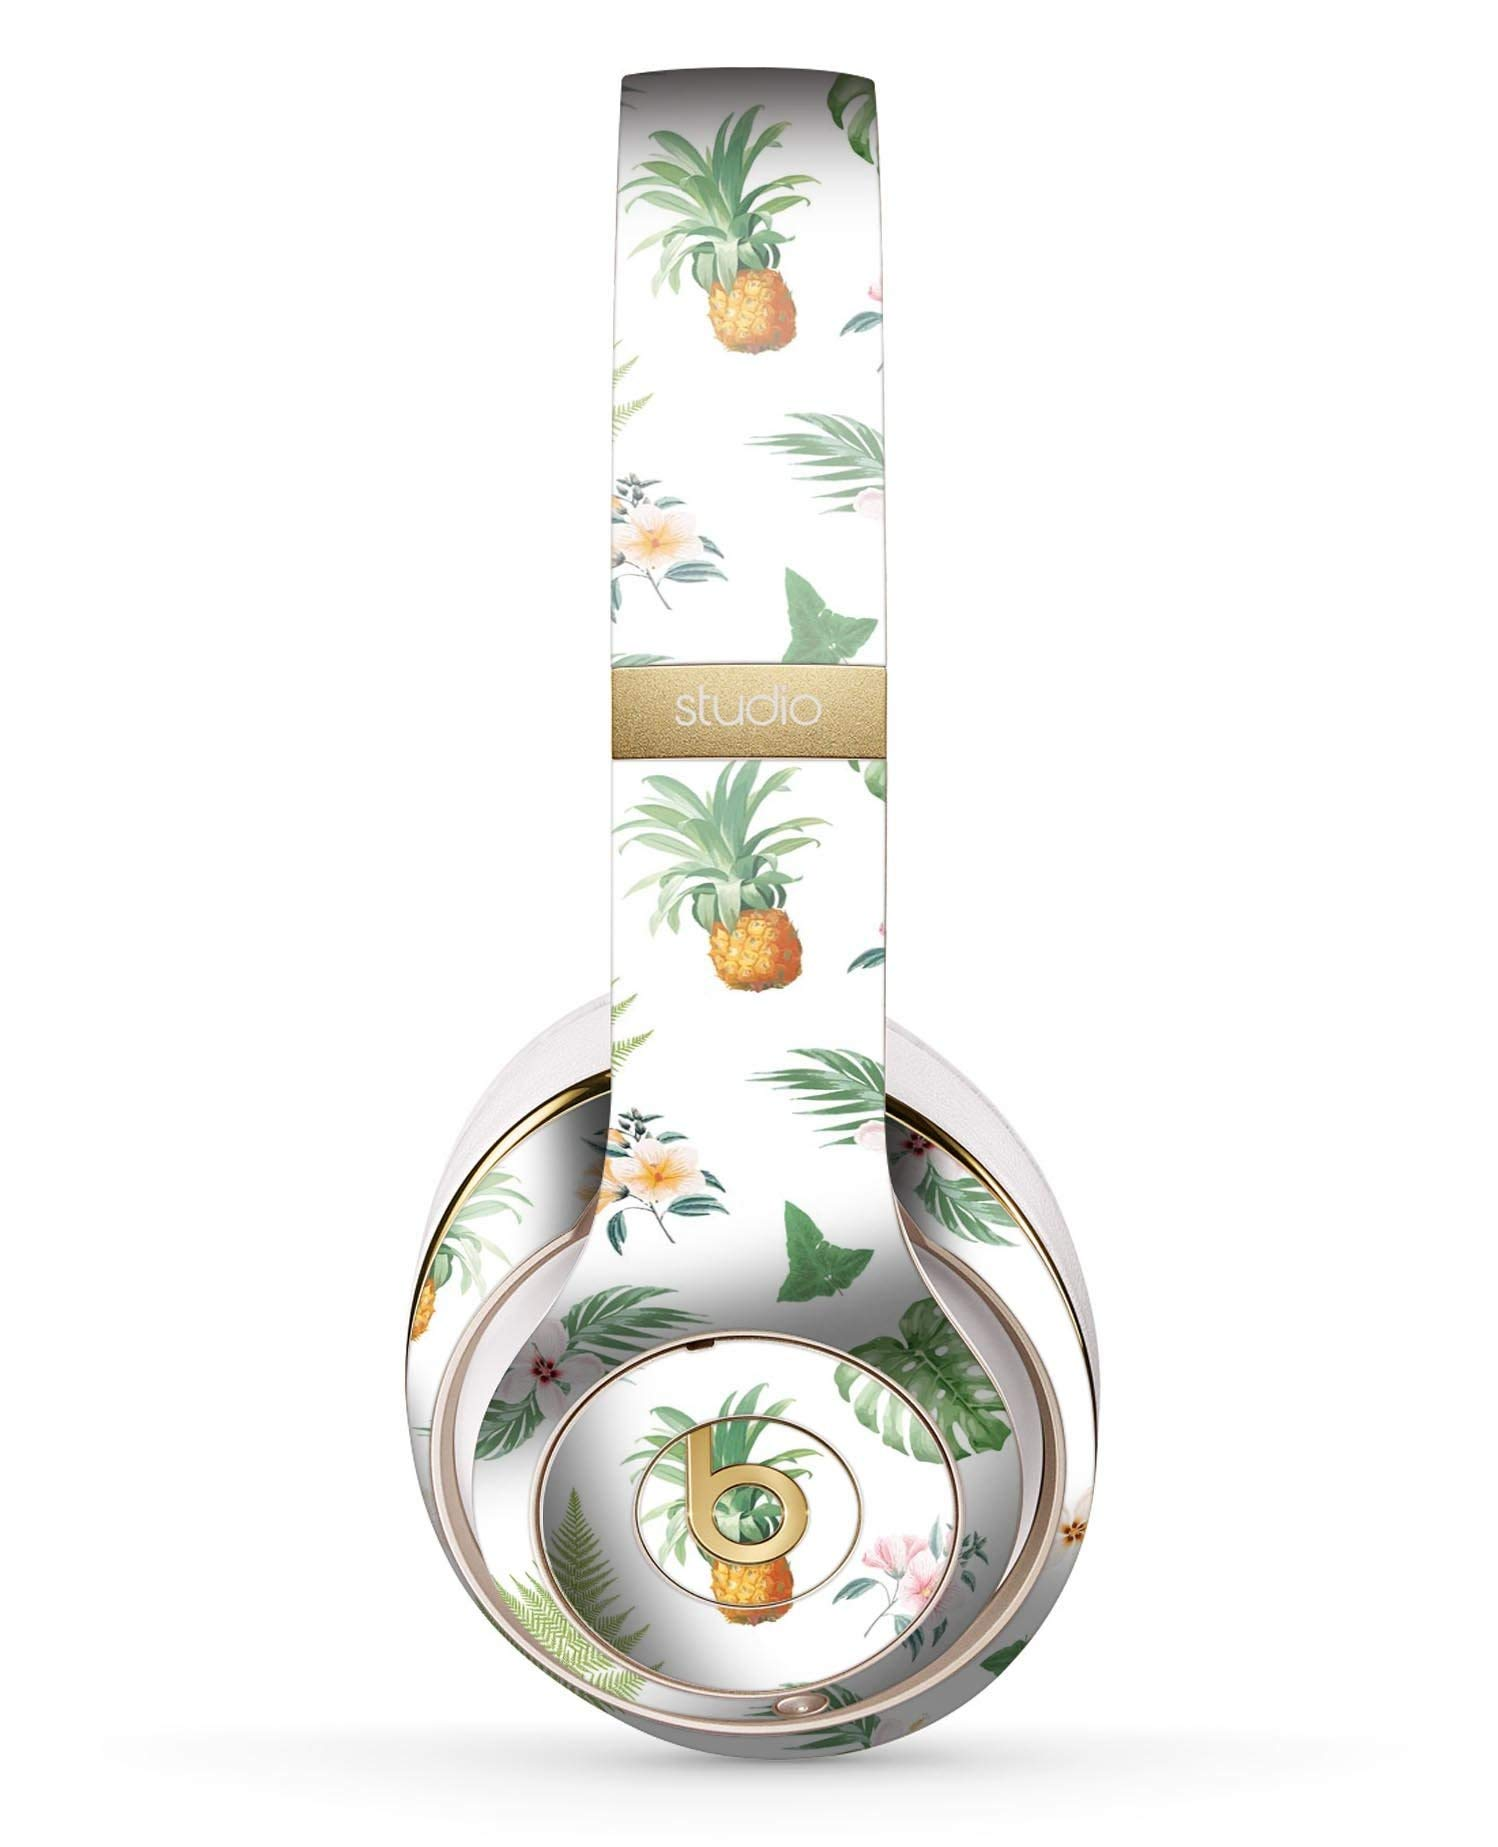 The Tropical Pineapple and Floral Pattern Design Skinz Full-Body Premium Authentic Skin Kit for The Beats by Dre Studio 2 or 3 Remastered Wireless Headphones Ultra-Thin Protective Decal Wrap